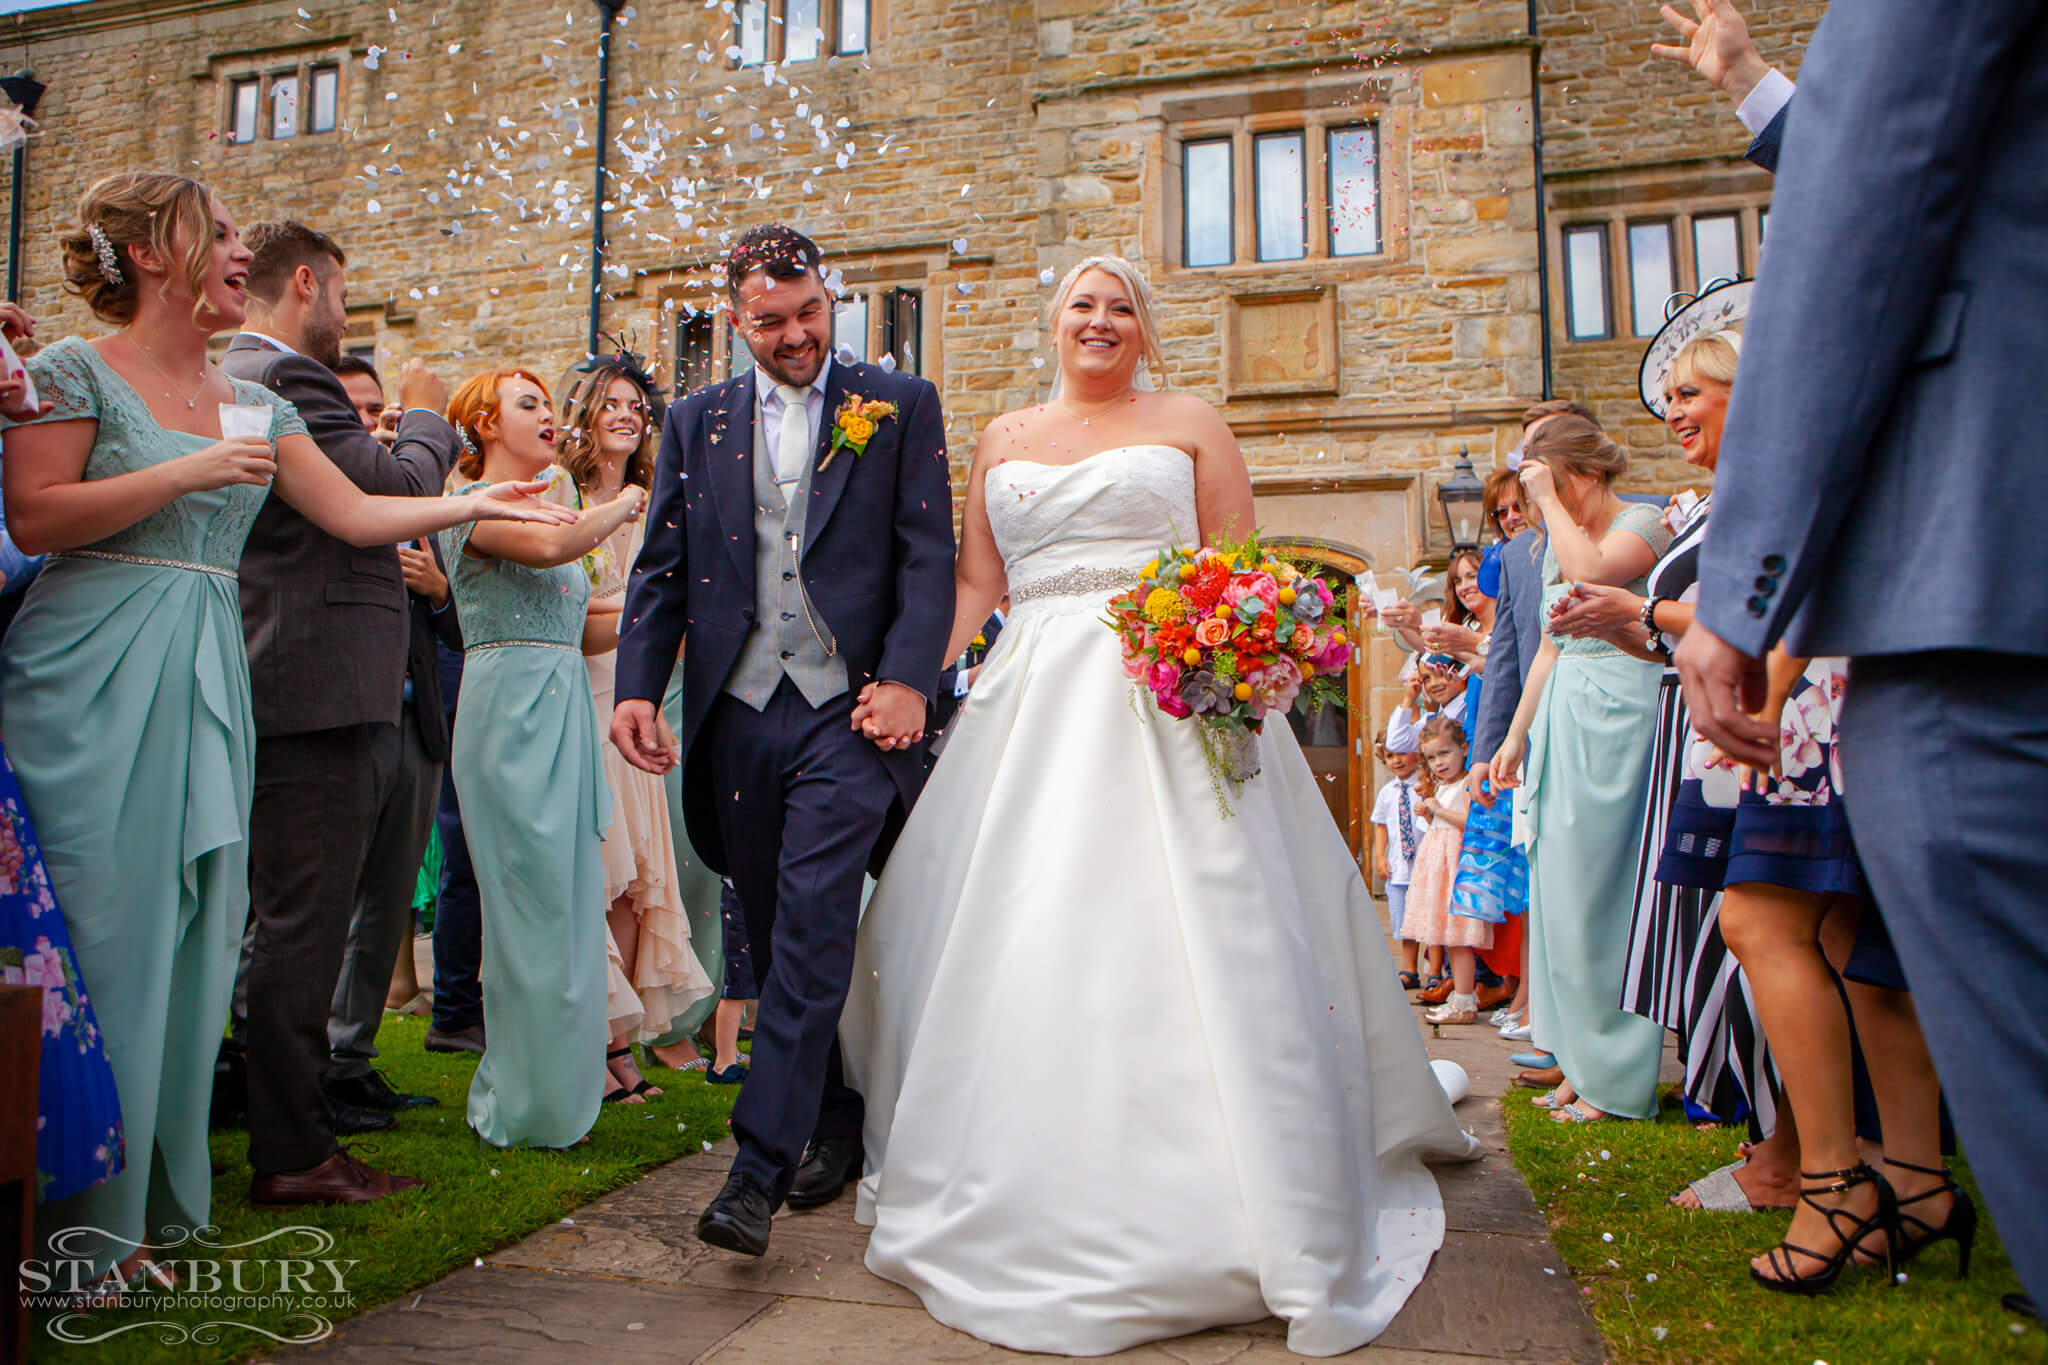 best-lancashire-wedding-photographers-stanbury-photography-023